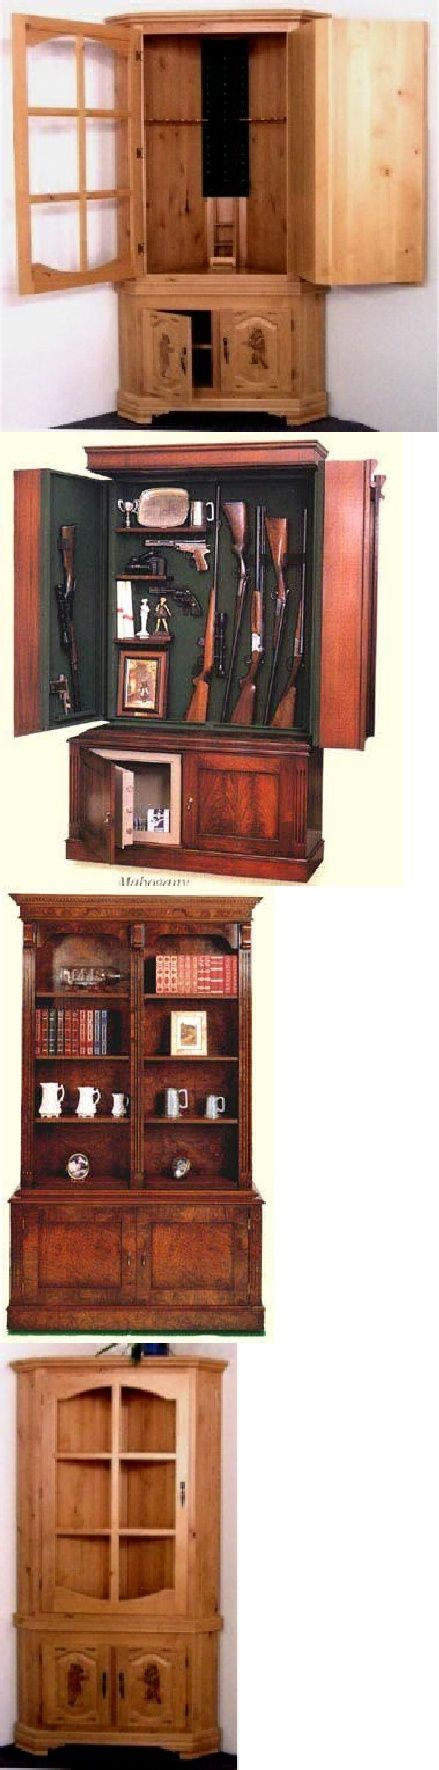 Pinterest the world s catalog of ideas for Cool hidden compartments